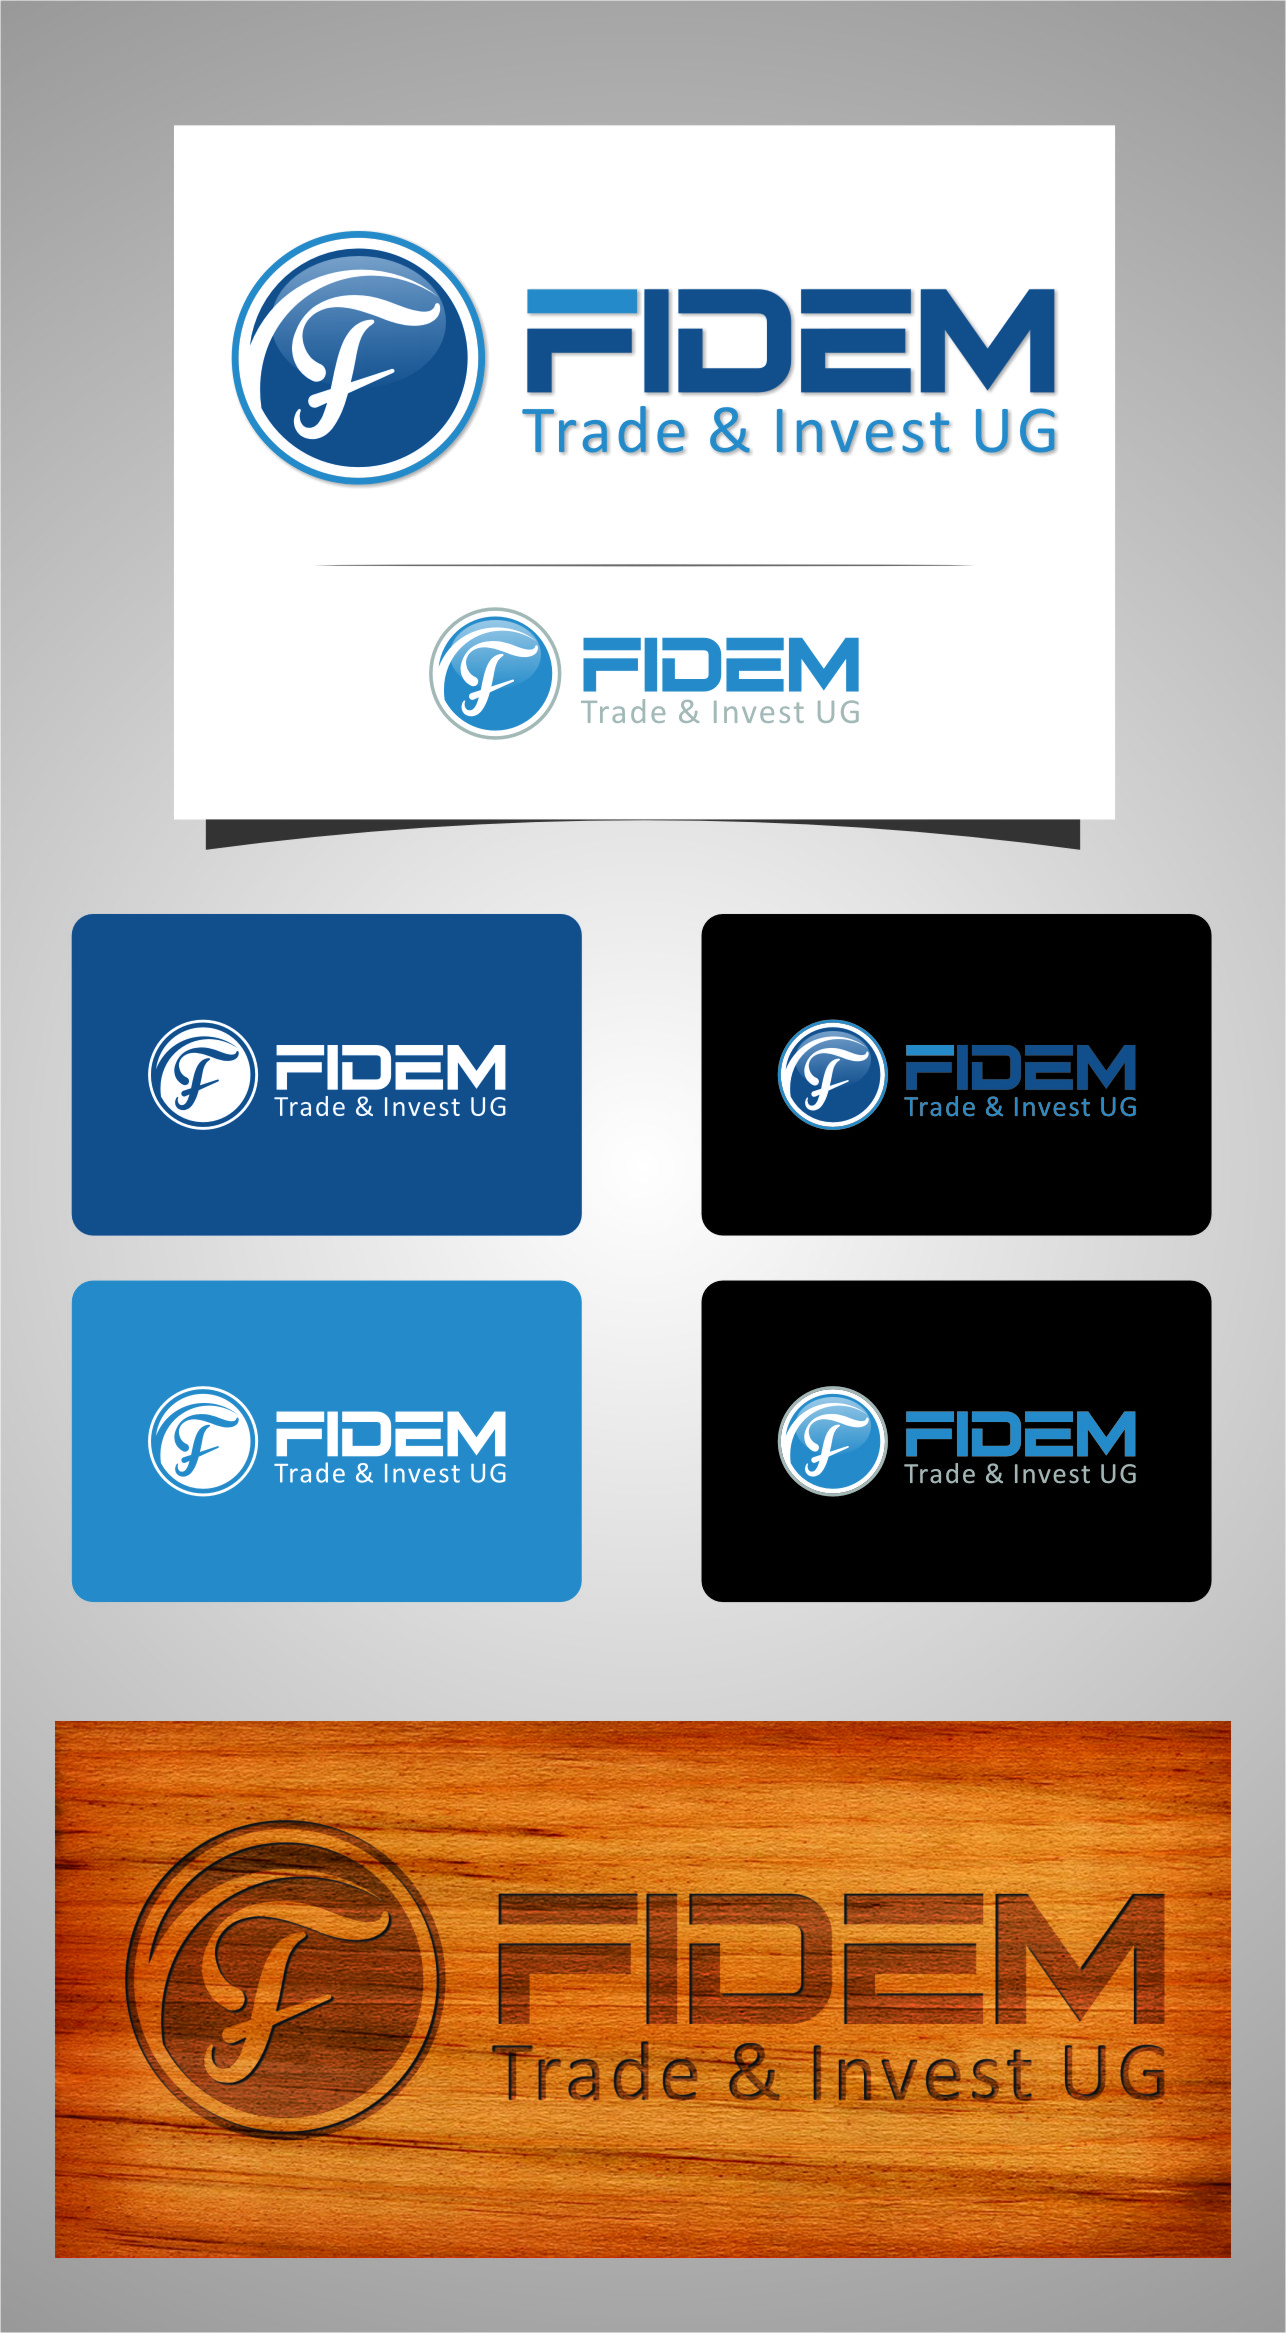 Logo Design by RasYa Muhammad Athaya - Entry No. 811 in the Logo Design Contest Professional Logo Design for FIDEM Trade & Invest UG.